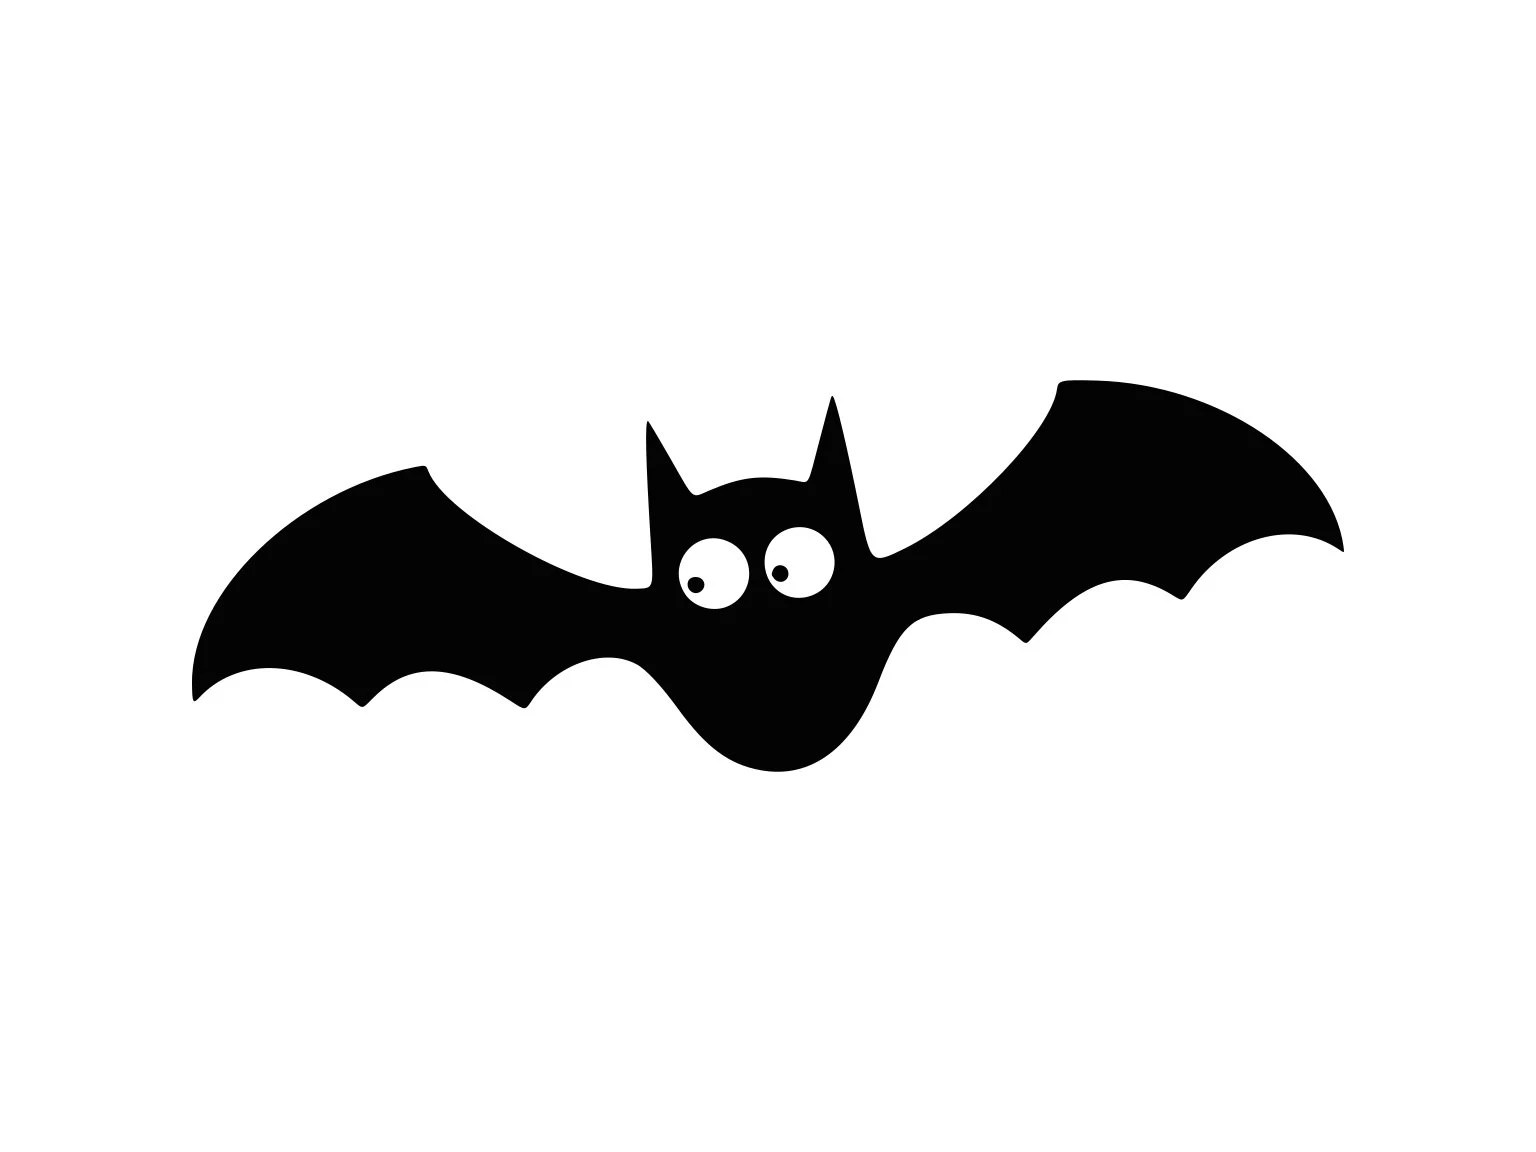 Bat Svg Halloween Bat Svg Spooky Silhouette Cutting File